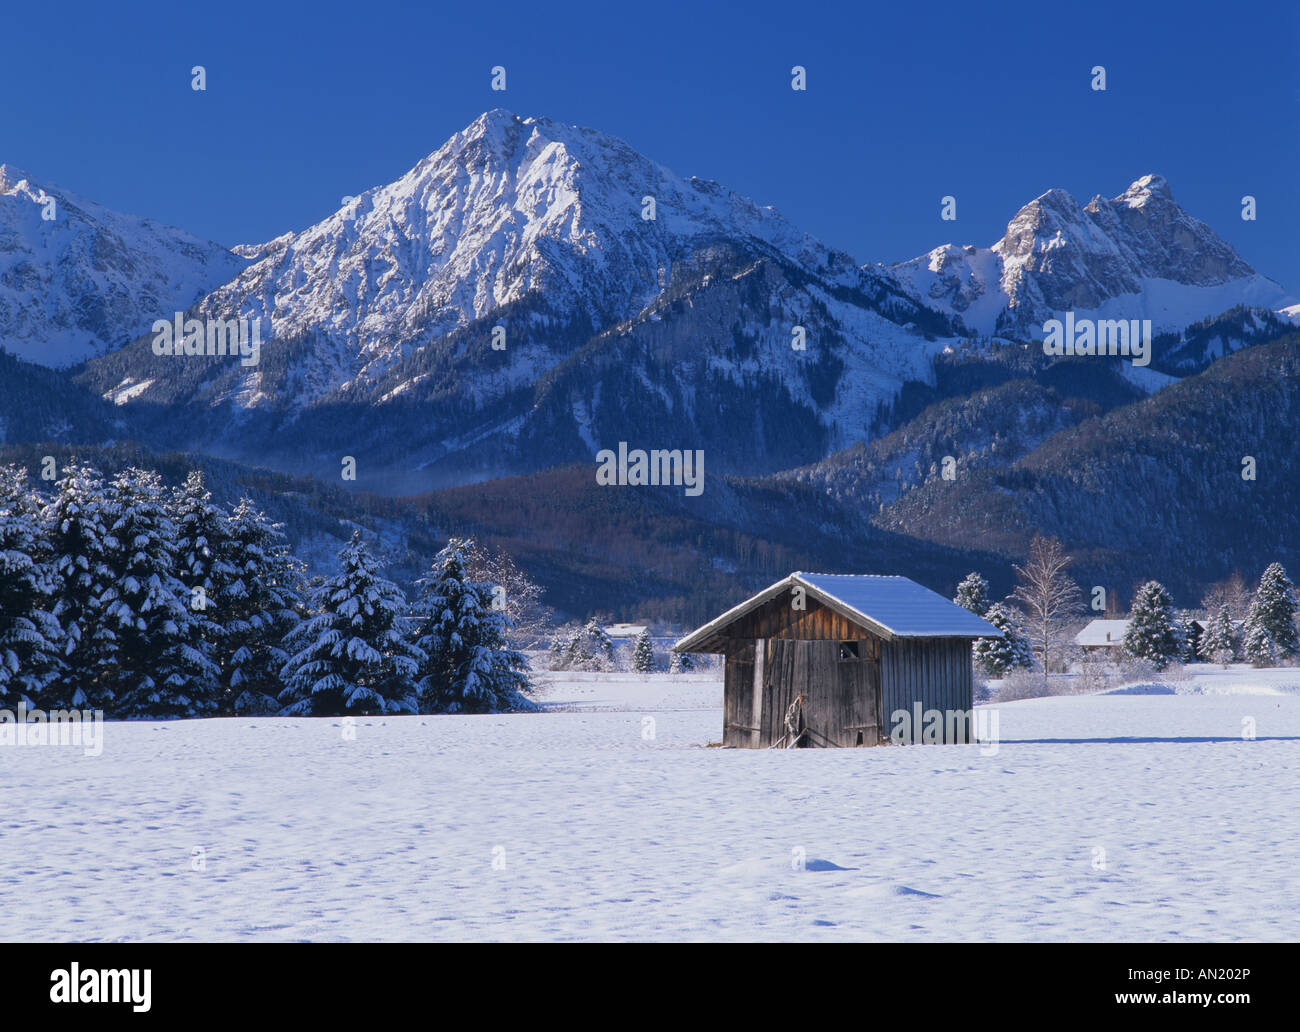 hut and snow covered mountains near Fuessen Allgaeu Bavaria Germany - Stock Image